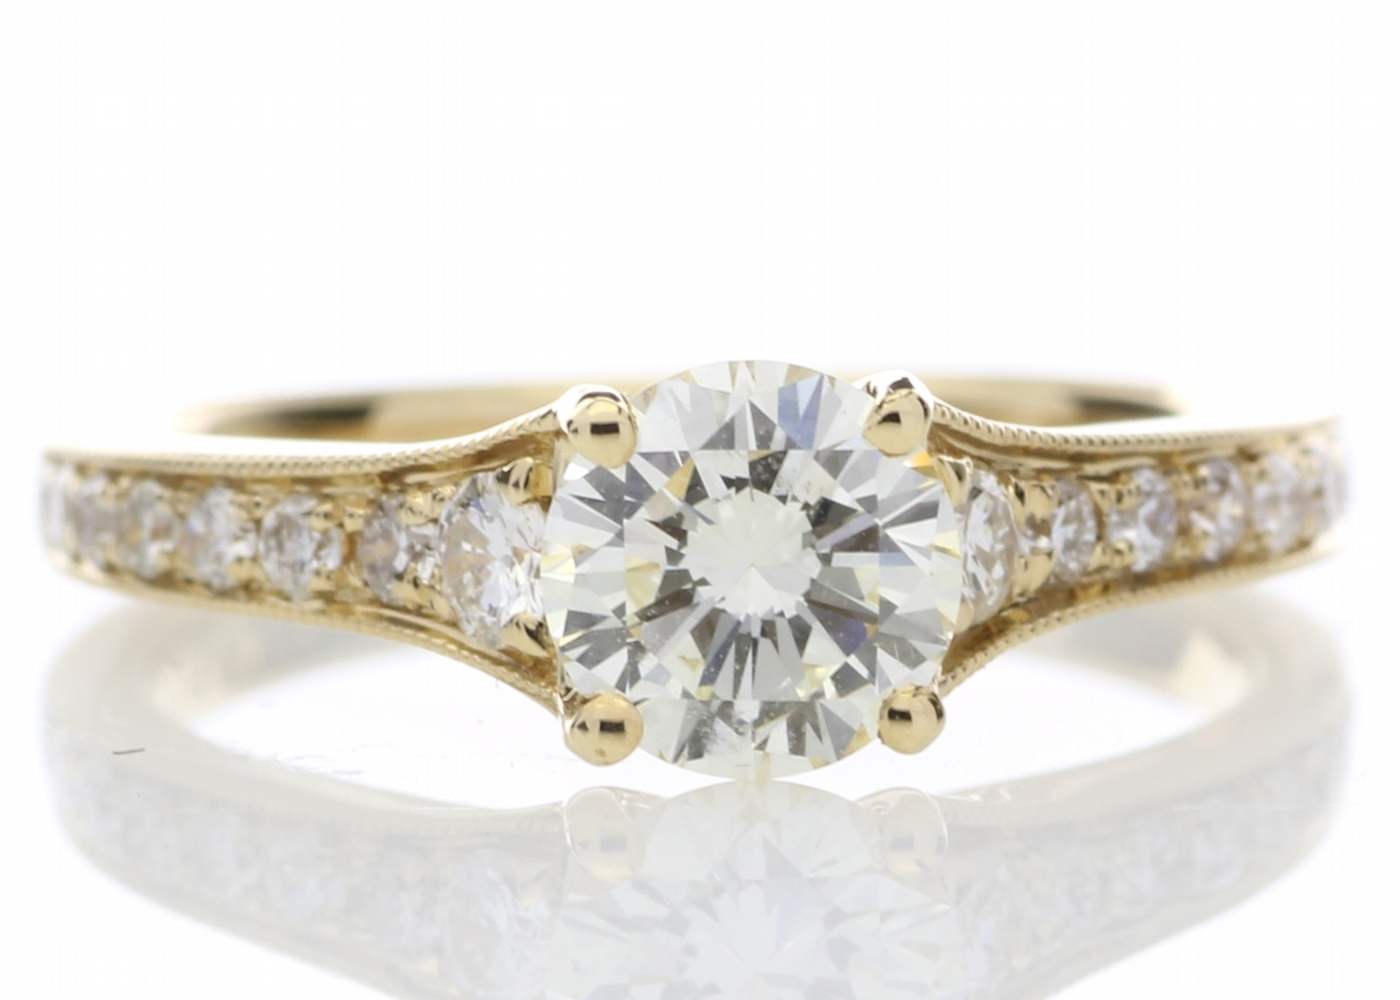 18ct Yellow Gold Diamond Ring With Stone Set Shoulders 1.06 Carats